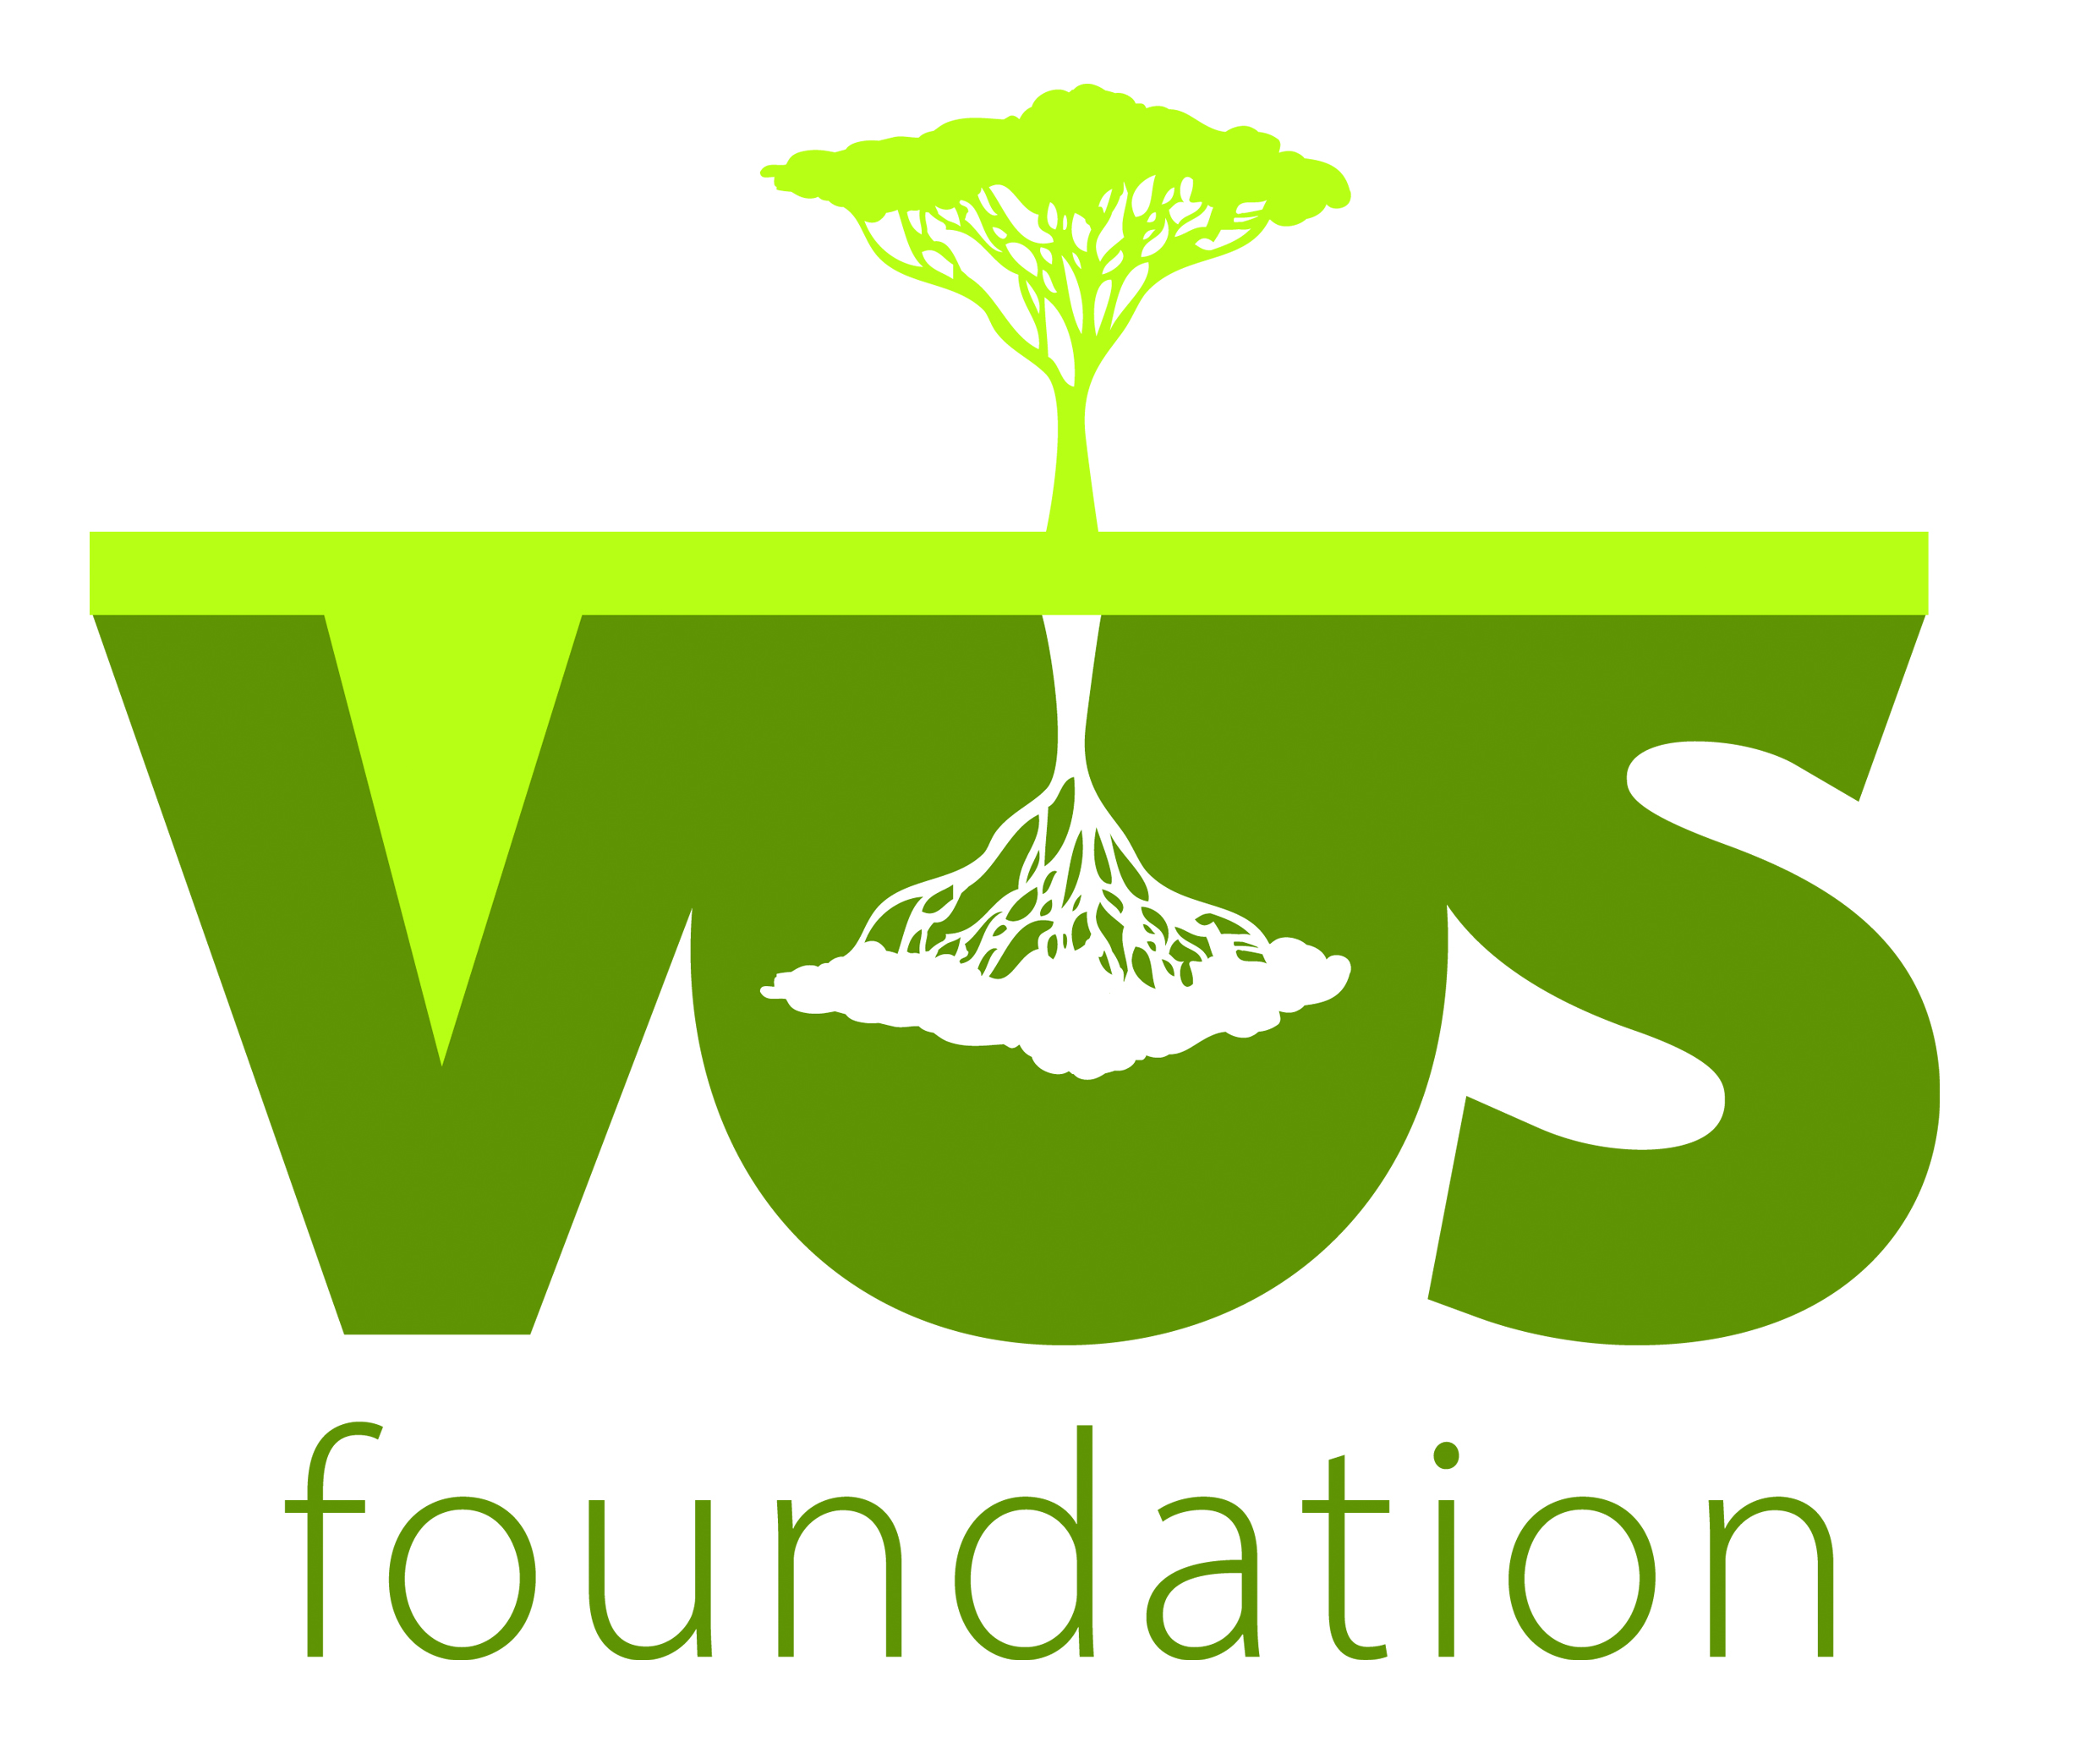 A logo commission for Vos foundation charity.